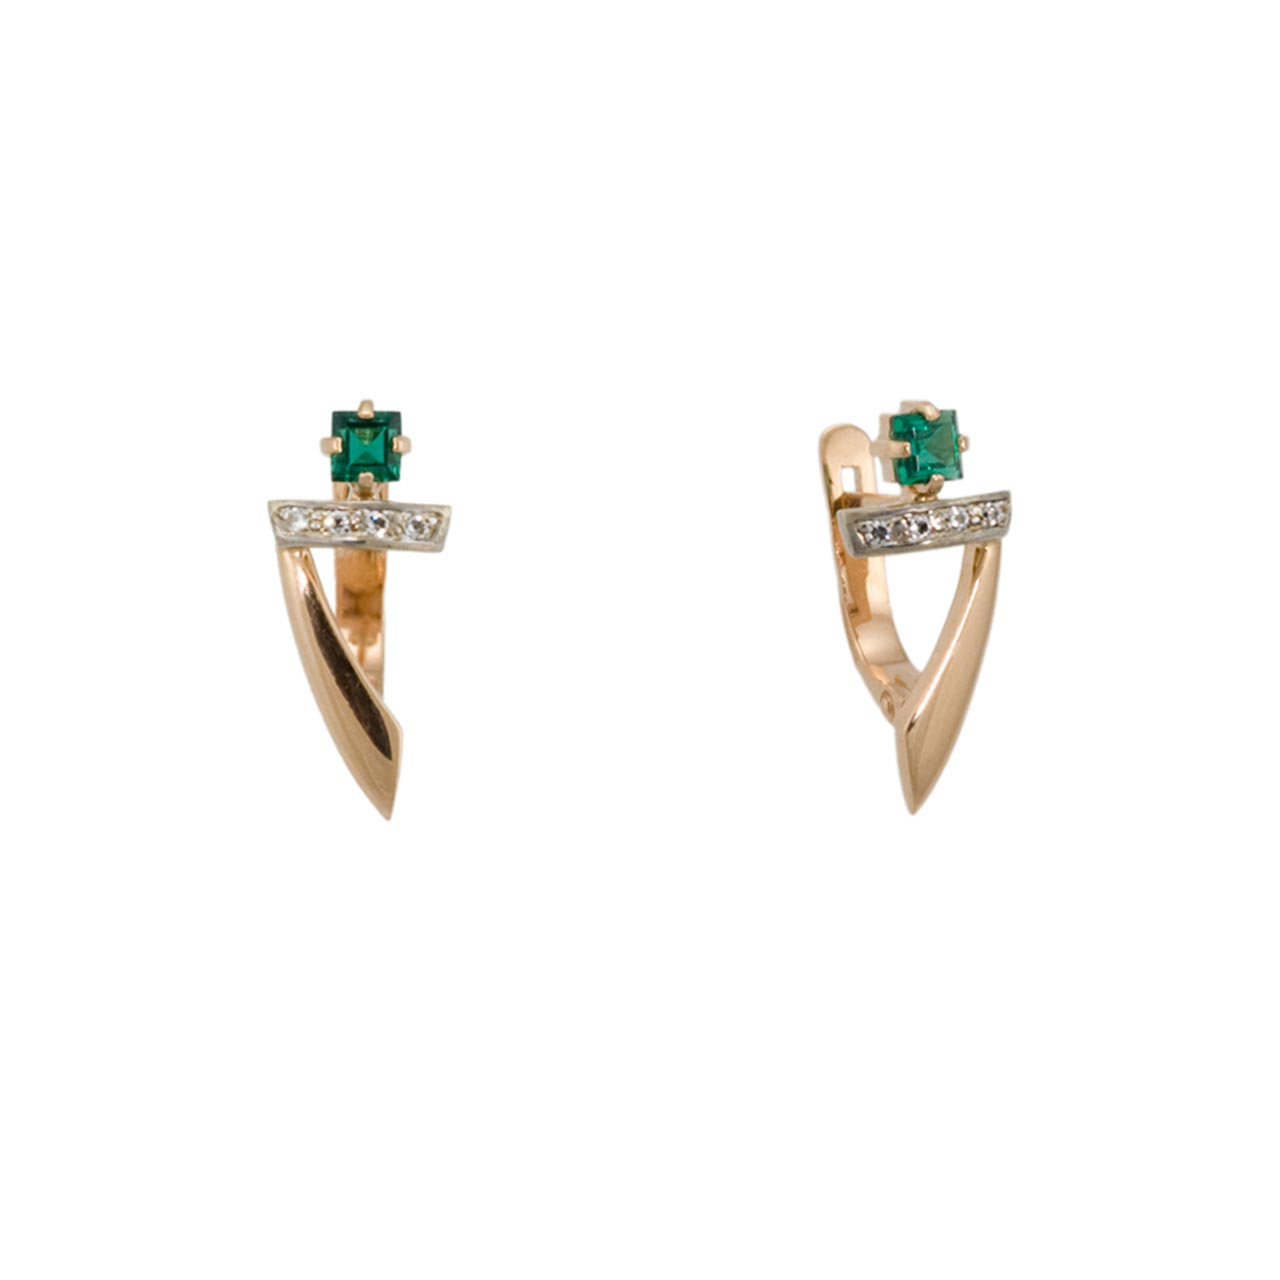 Russian Emerald Earrings